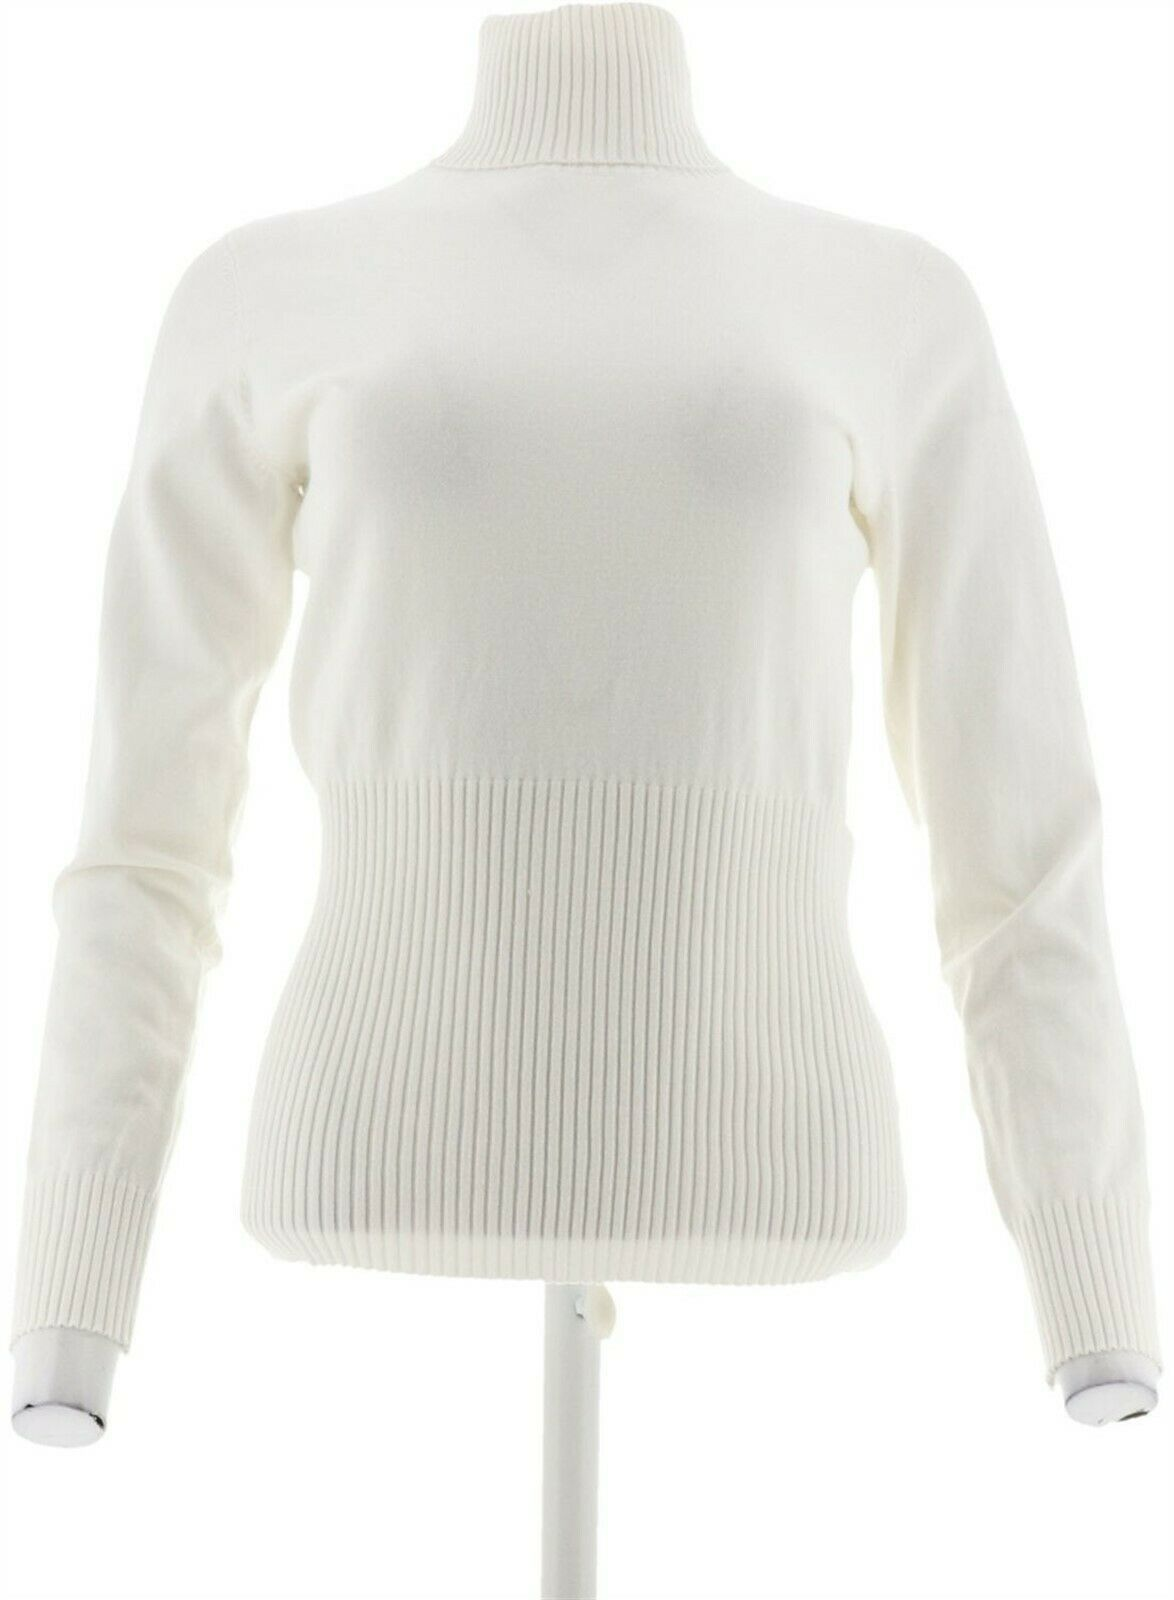 Primary image for Linea Louis Dell'Olio Whisper Knit Turtleneck Rib Winter White S NEW A295877